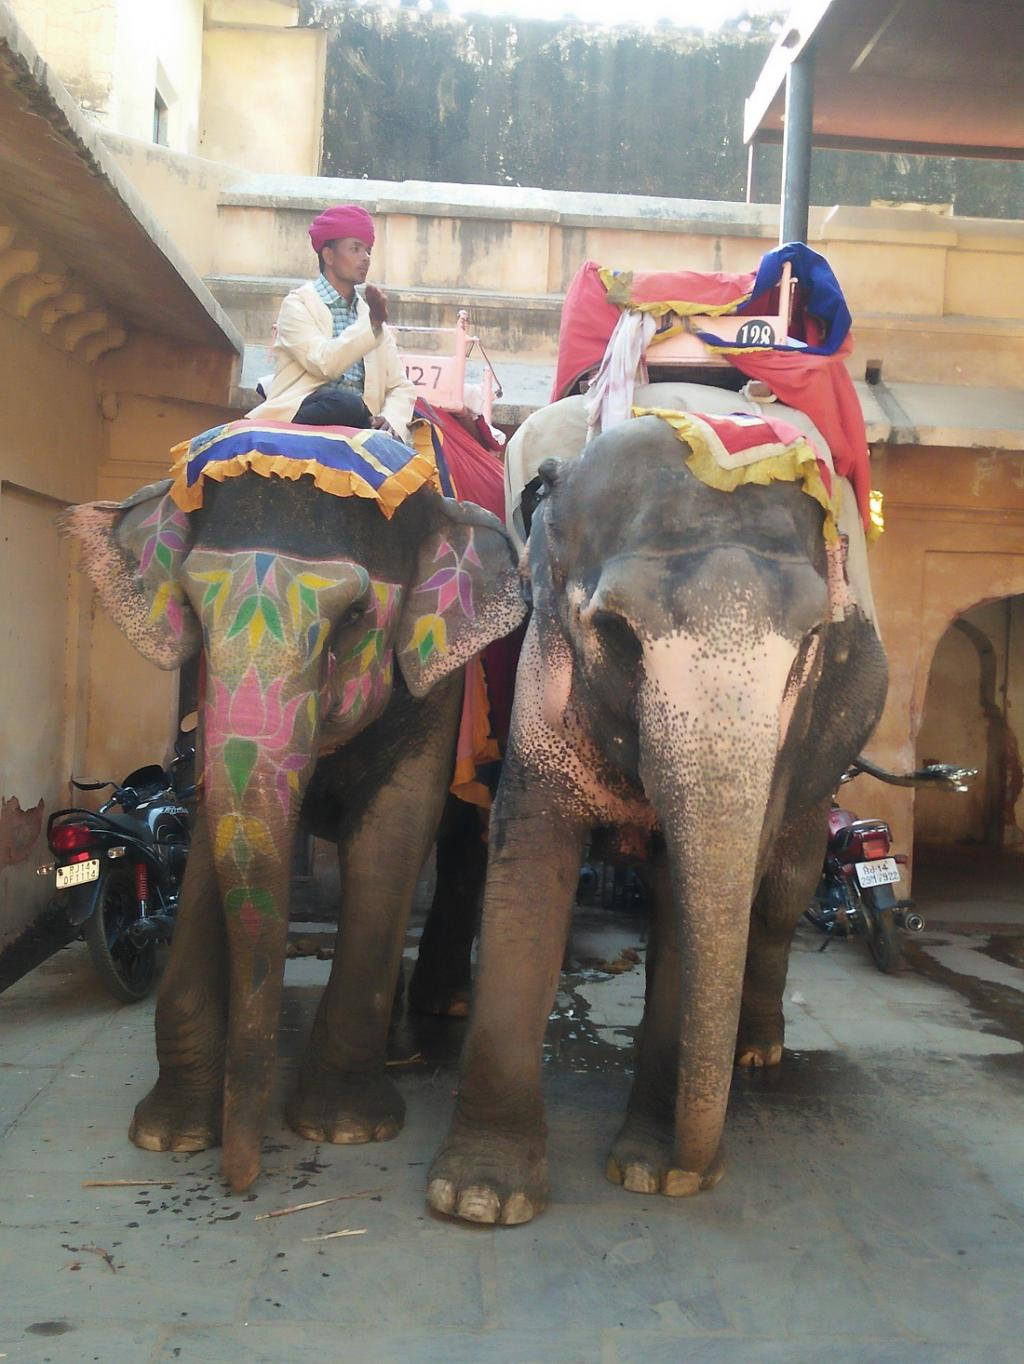 Elephants in Amer fort stable in Jaipur photographed by Shubhobroto Ghosh